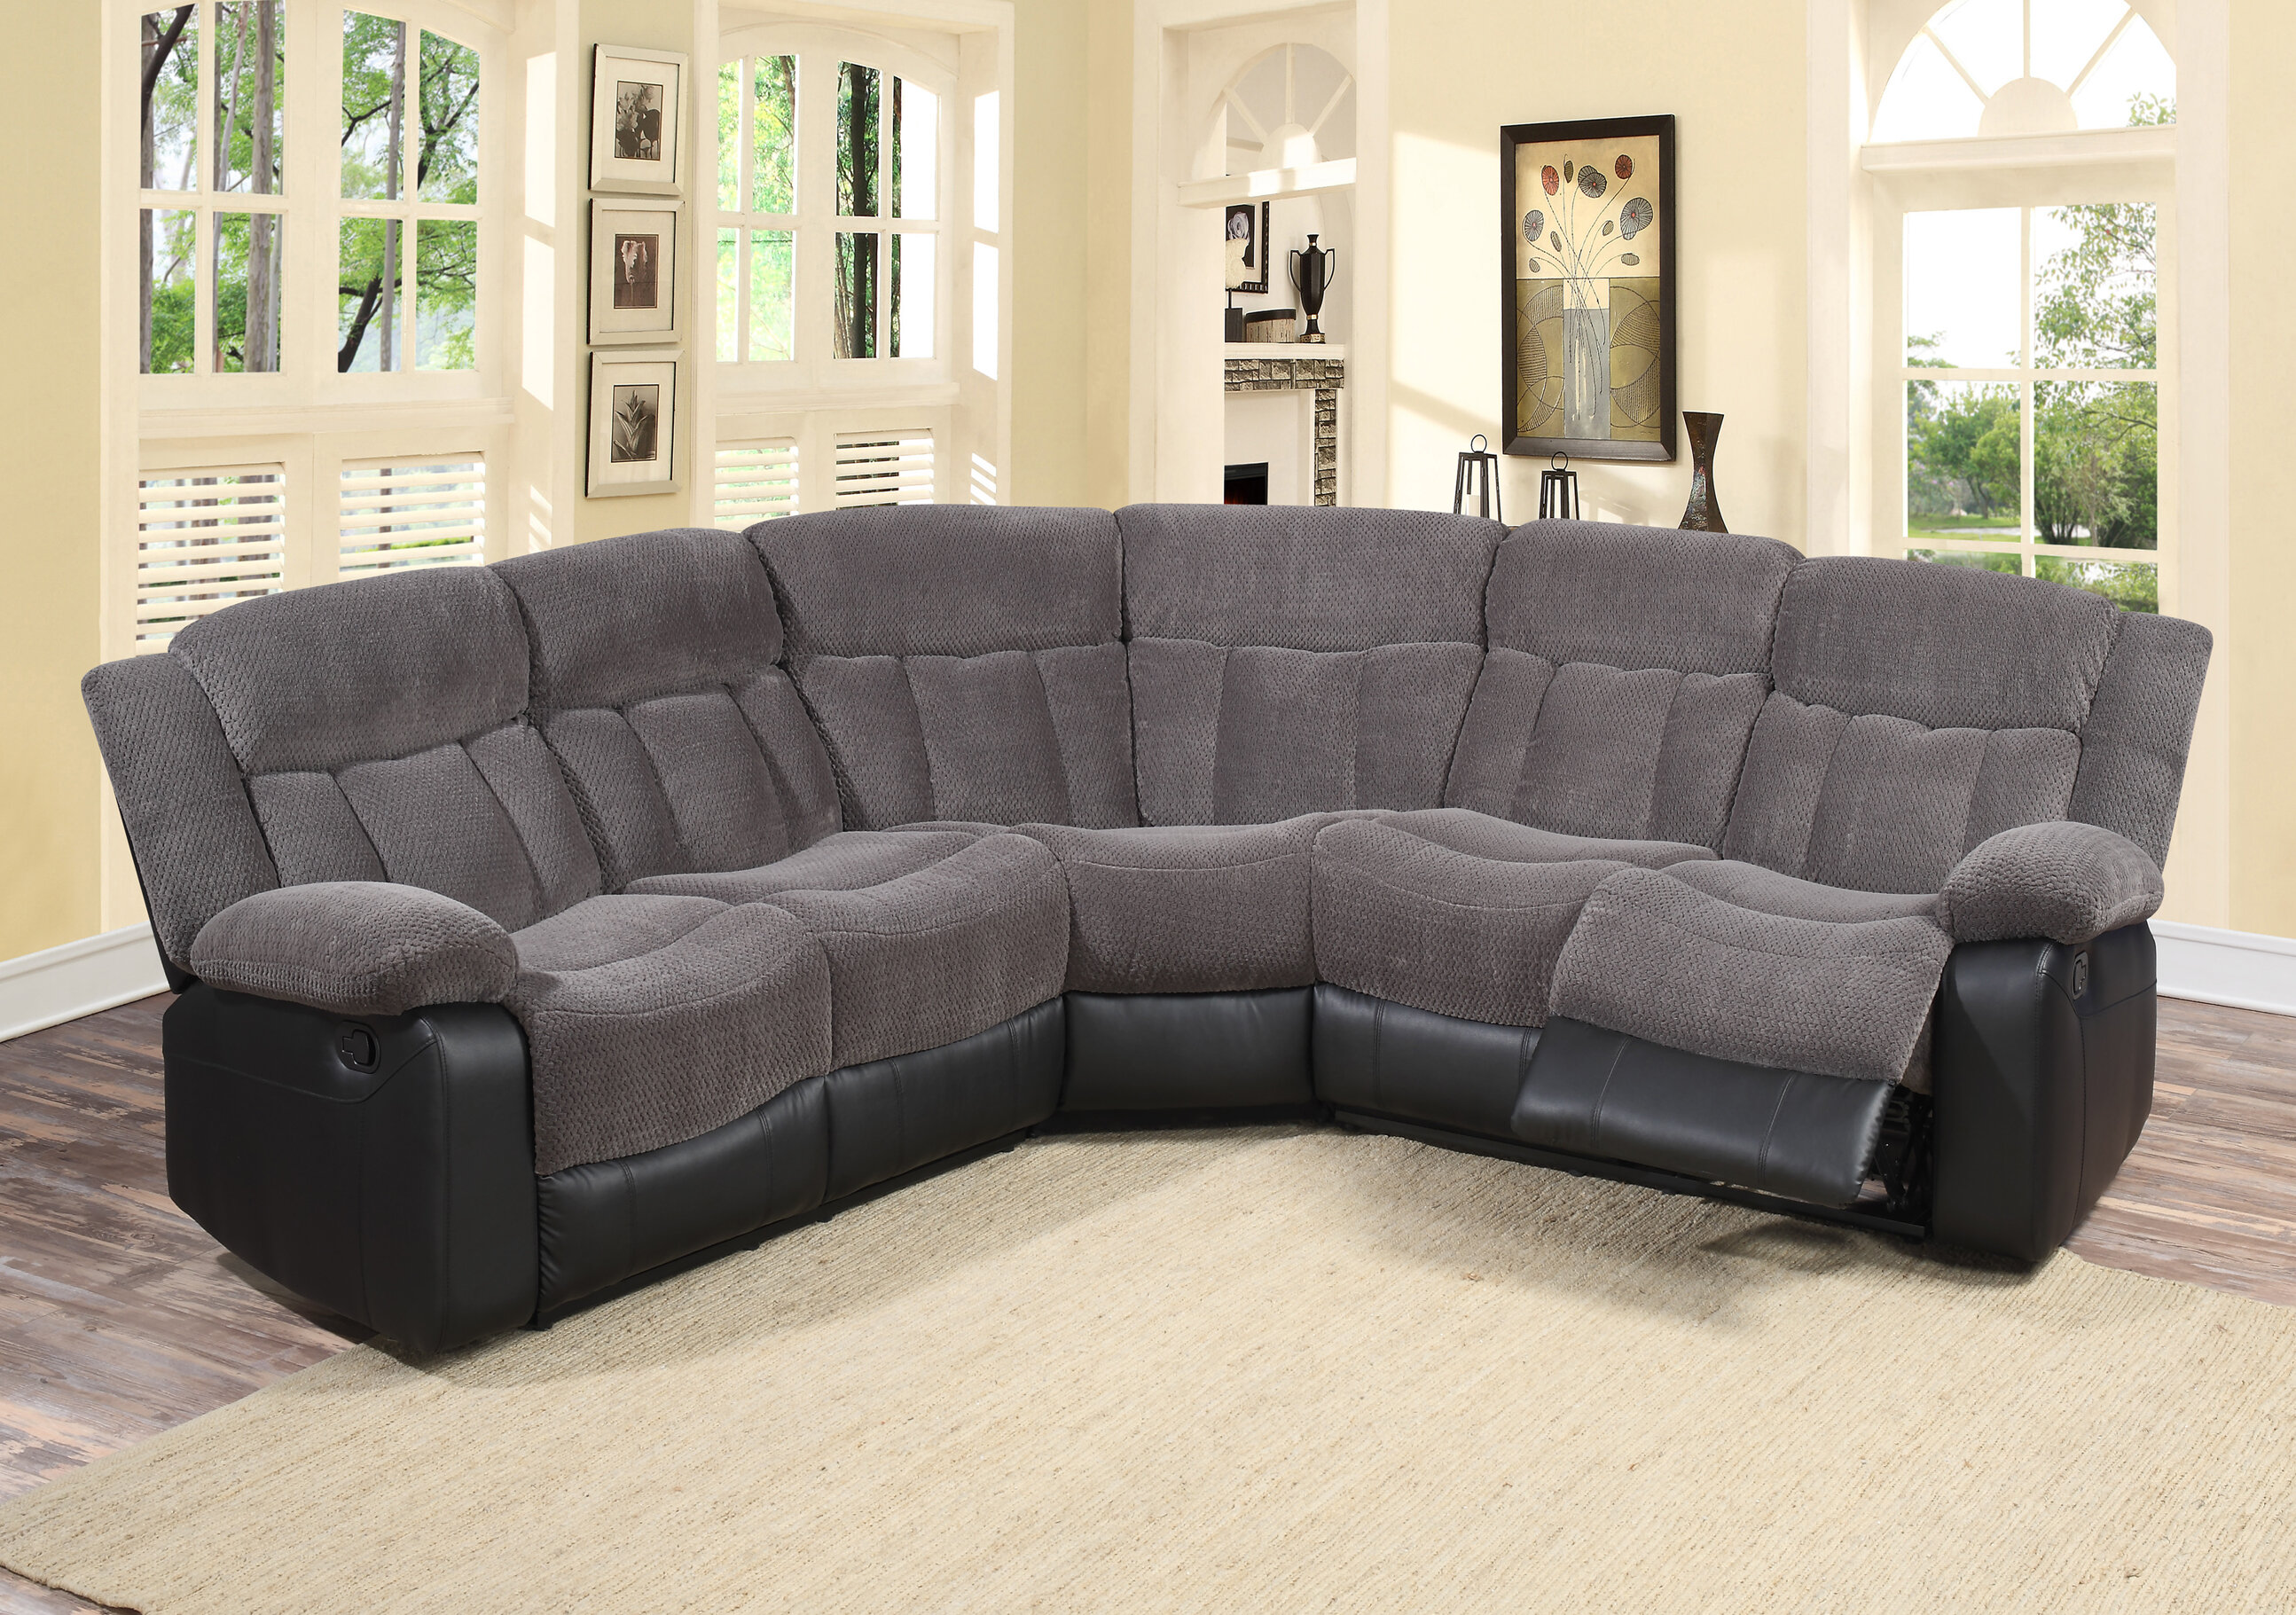 small recliners of u size sofa room living and chaise l lounge couch sofas recliner sectional shaped bed with full oversized grey